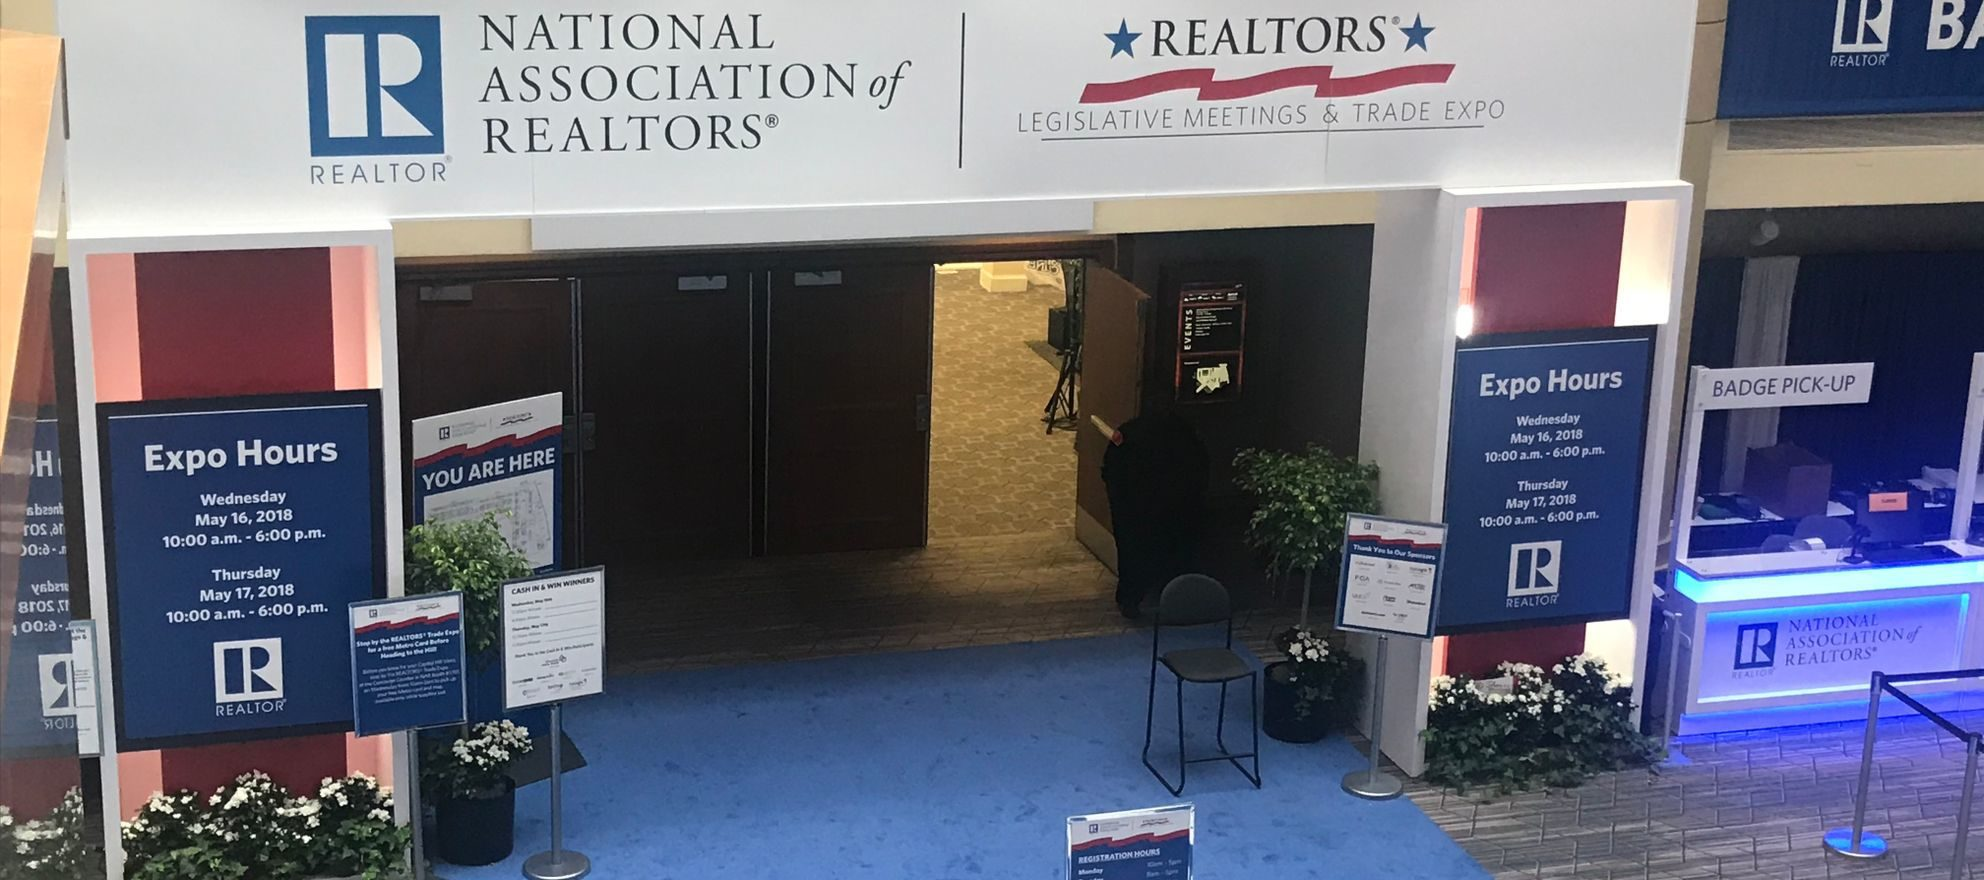 everything you need to know about nar midyear 2018